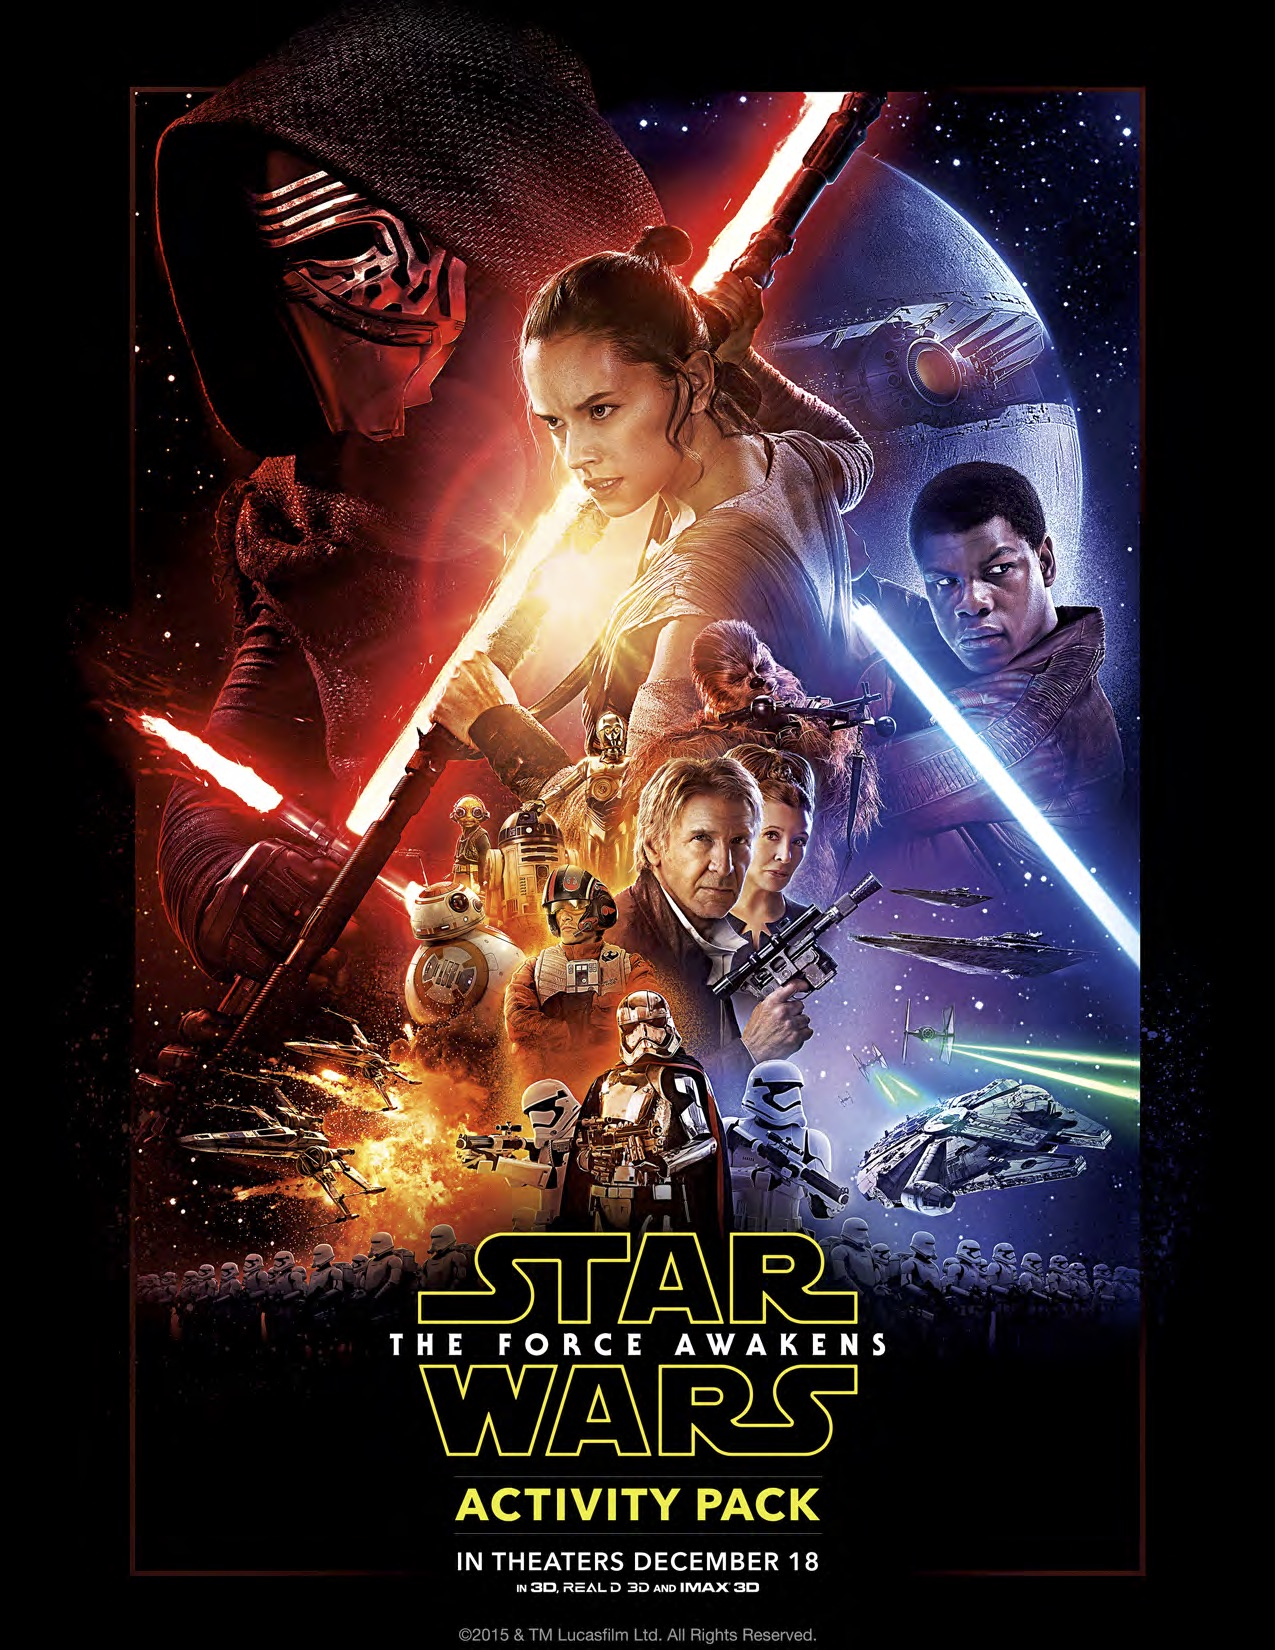 Star Wars The Force Awakens Co